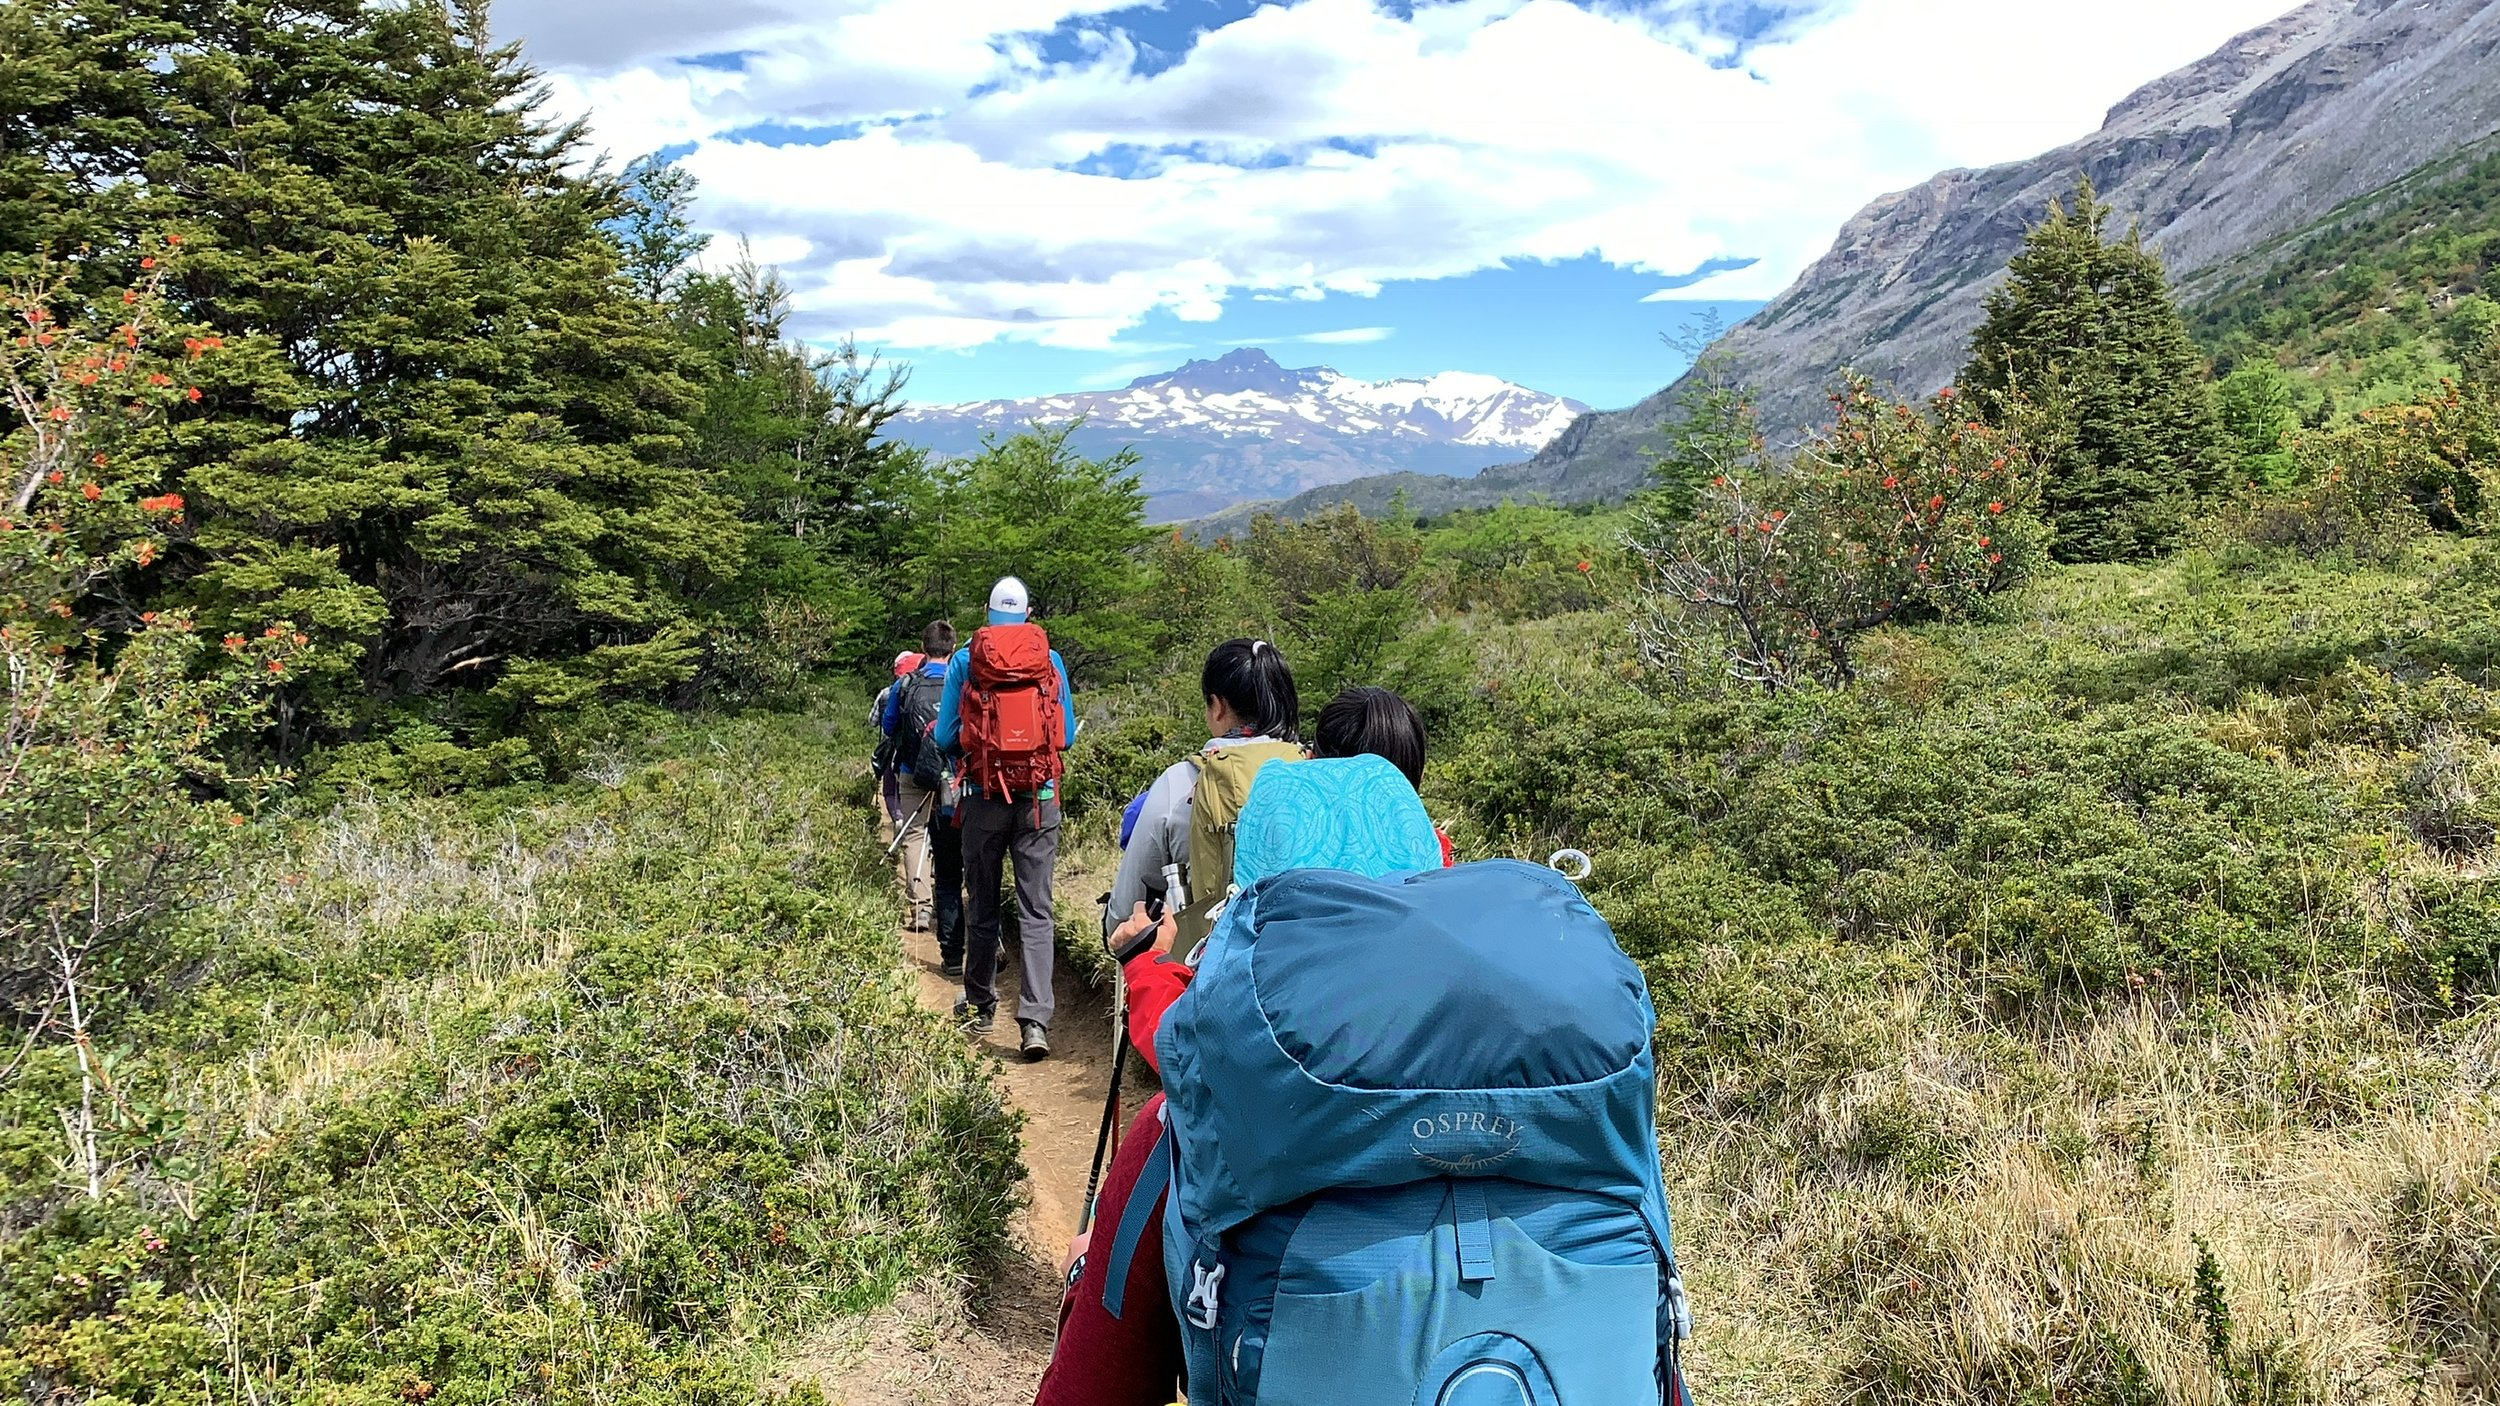 Typical trail in Torres del Paine